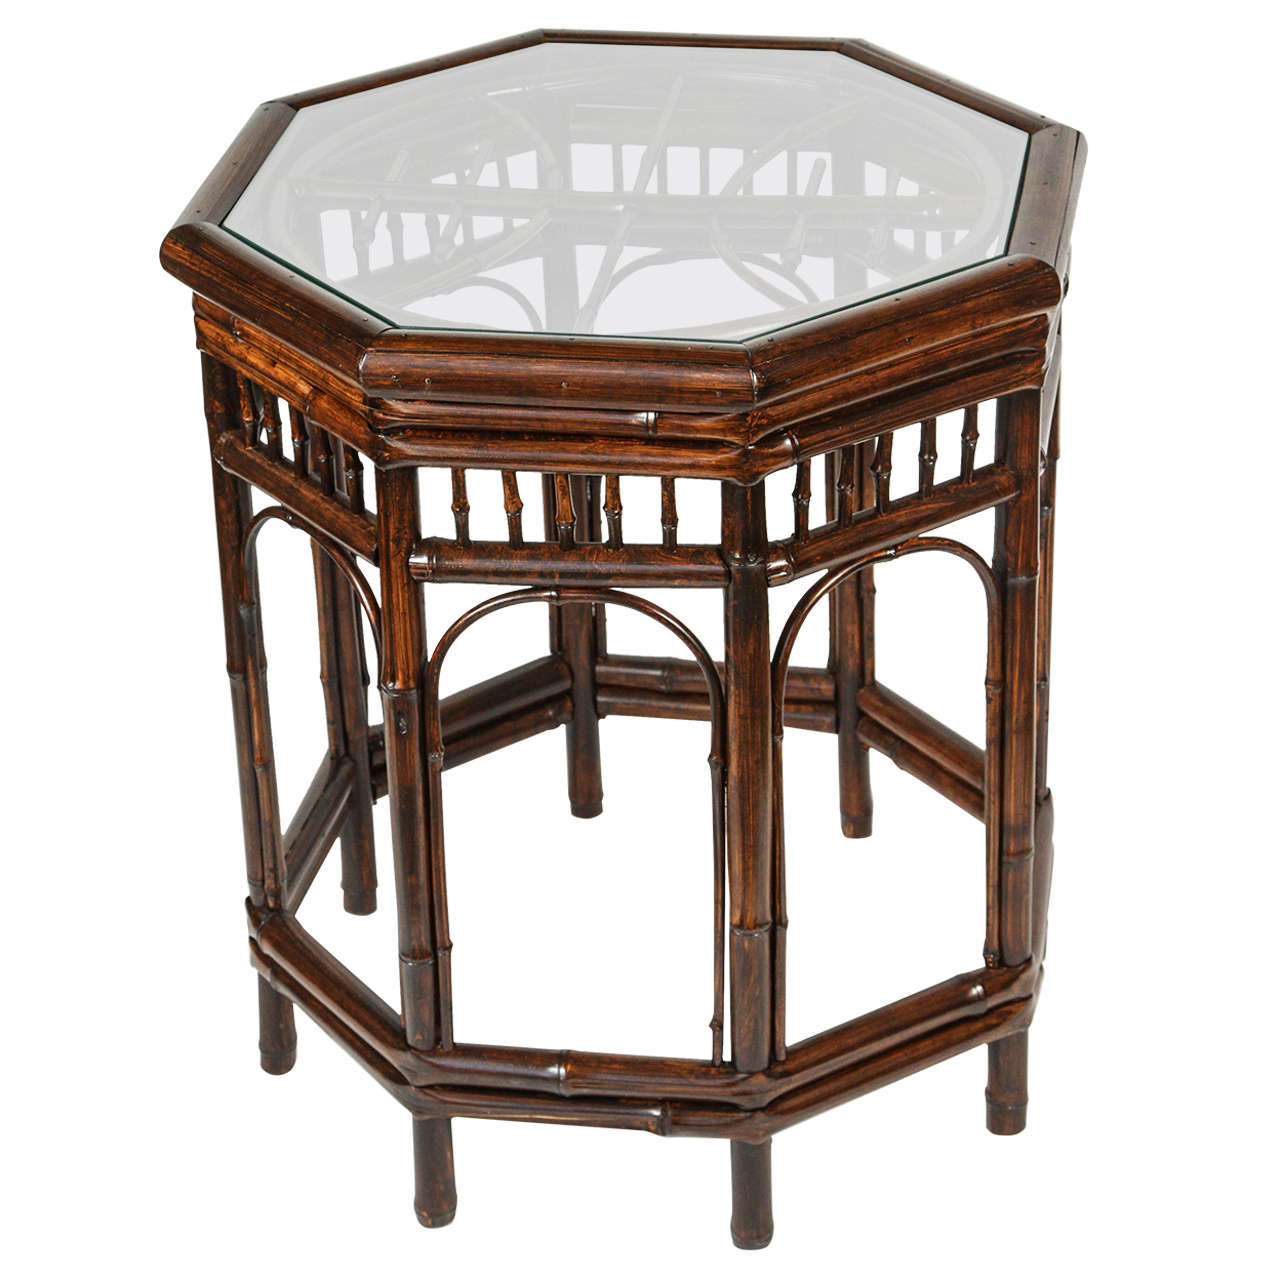 Vintage bamboo side table at 1stdibs for Bamboo side table